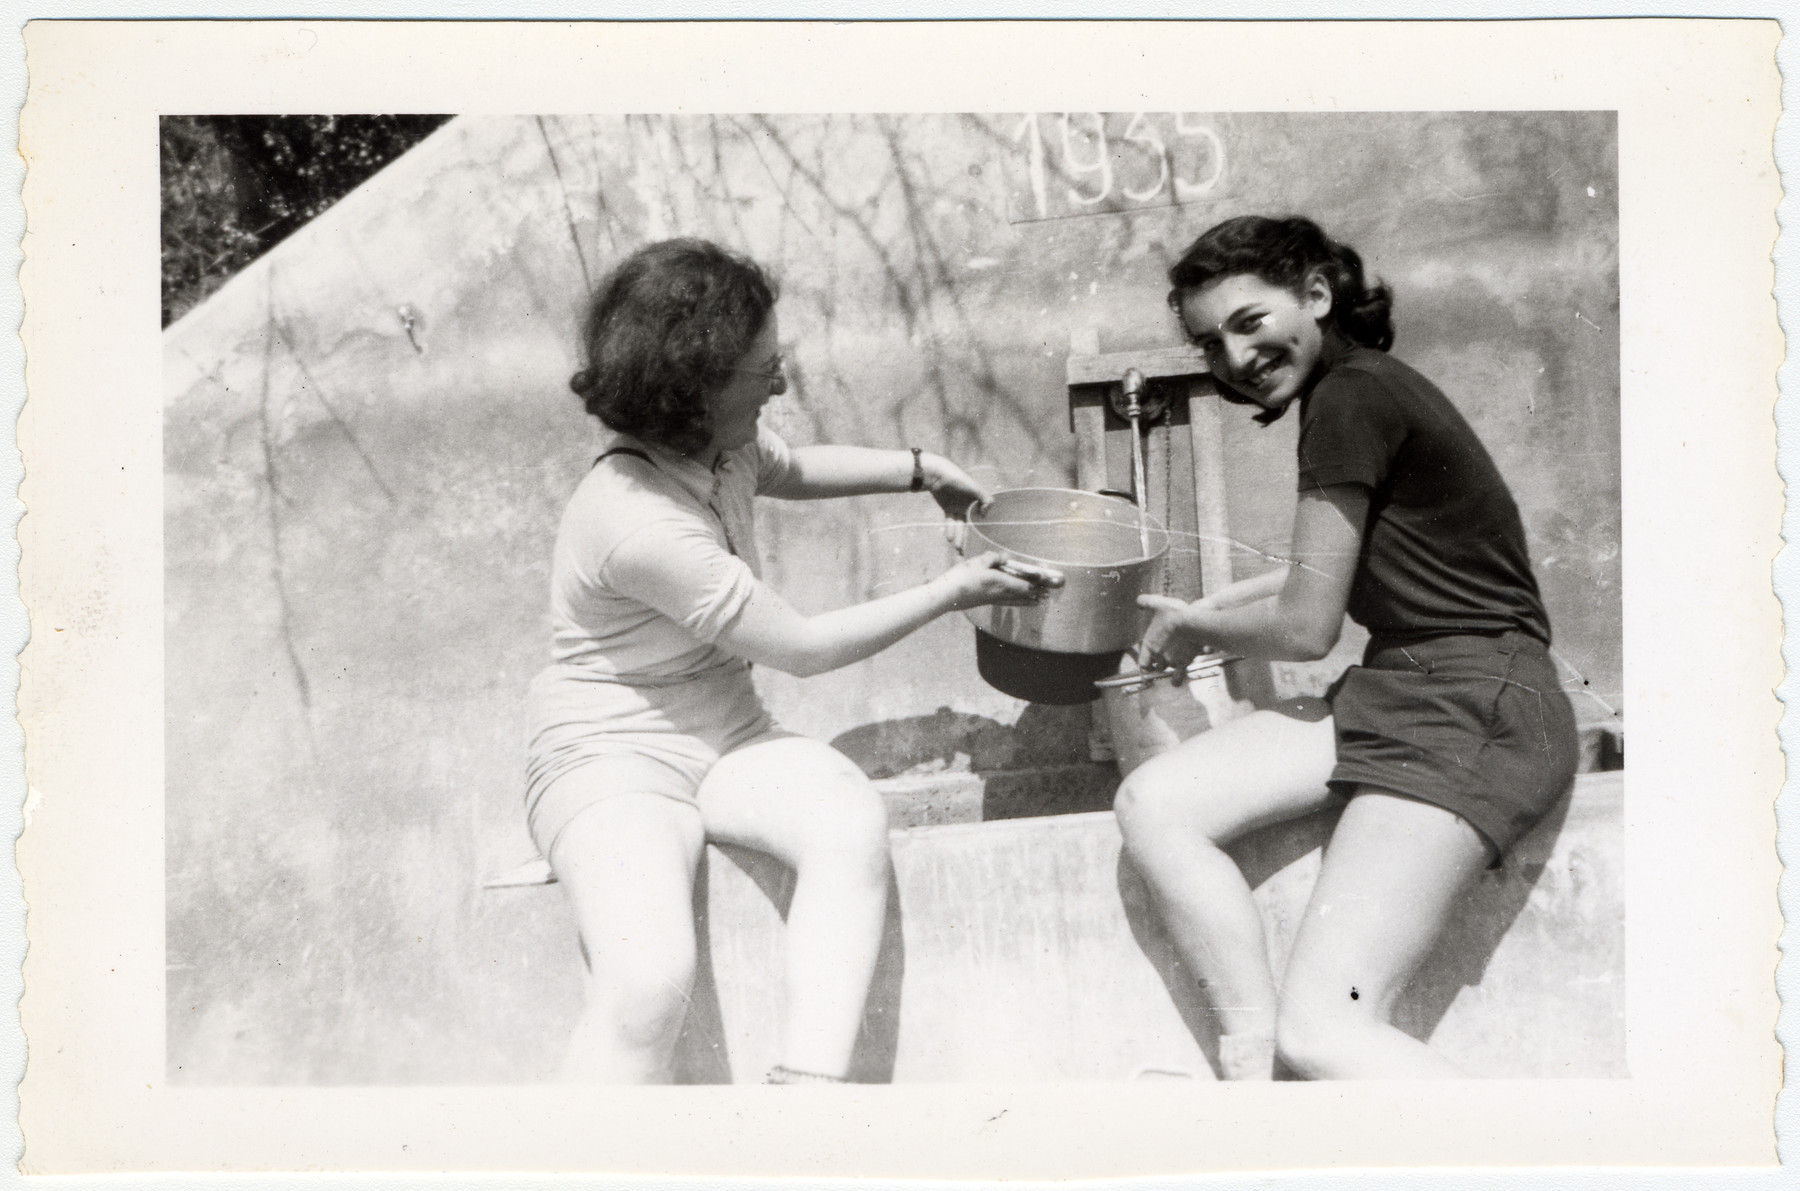 Lony Browar and Ruth Rappaport pose at the water well in Elgg, iSwitzerland.